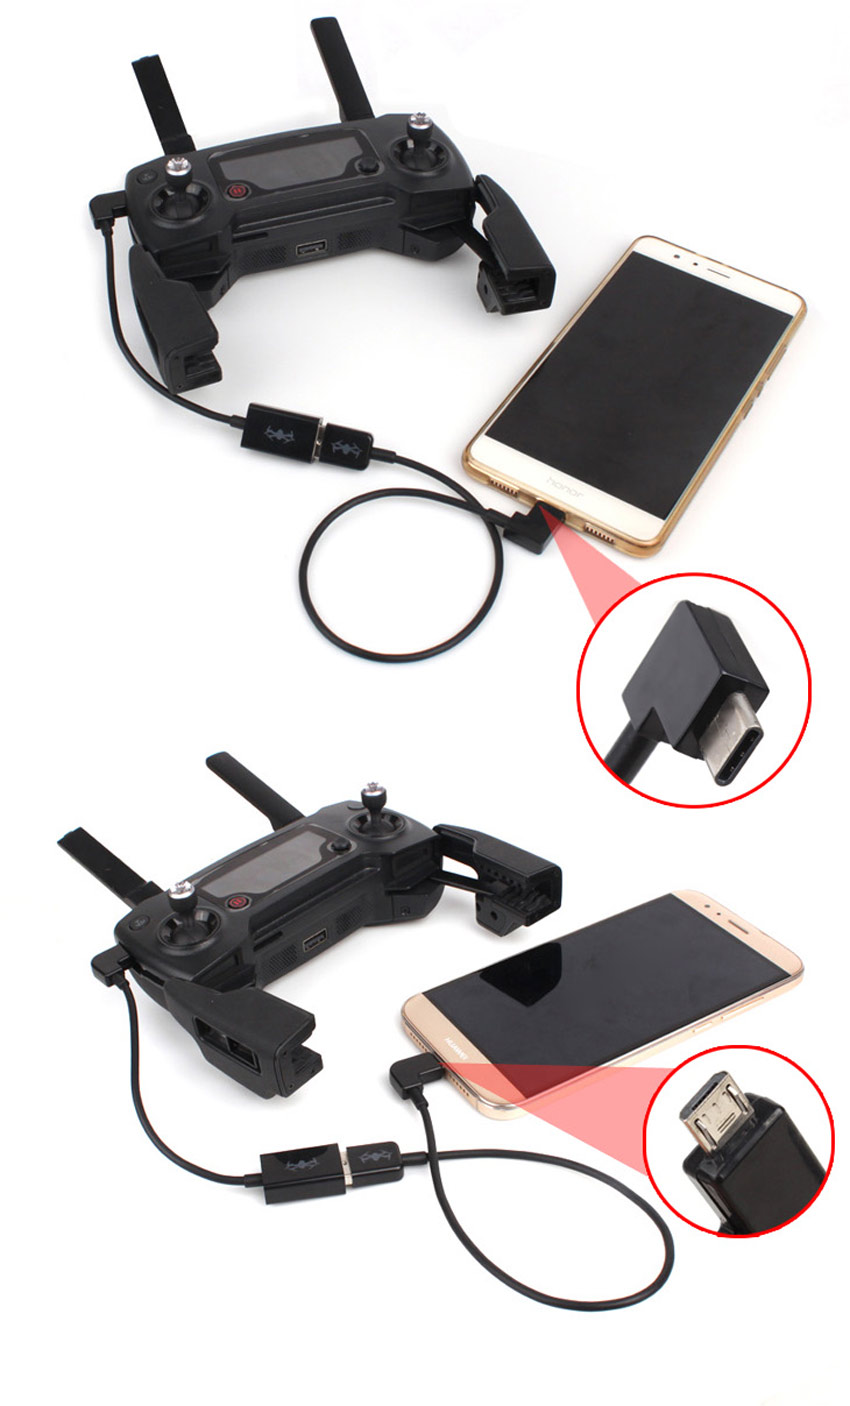 DJI SPARK DJI Mavic Pro Remote Controller Data Converting Cable USB Port Energy Conversion Line Wire for Smartphone Tablets